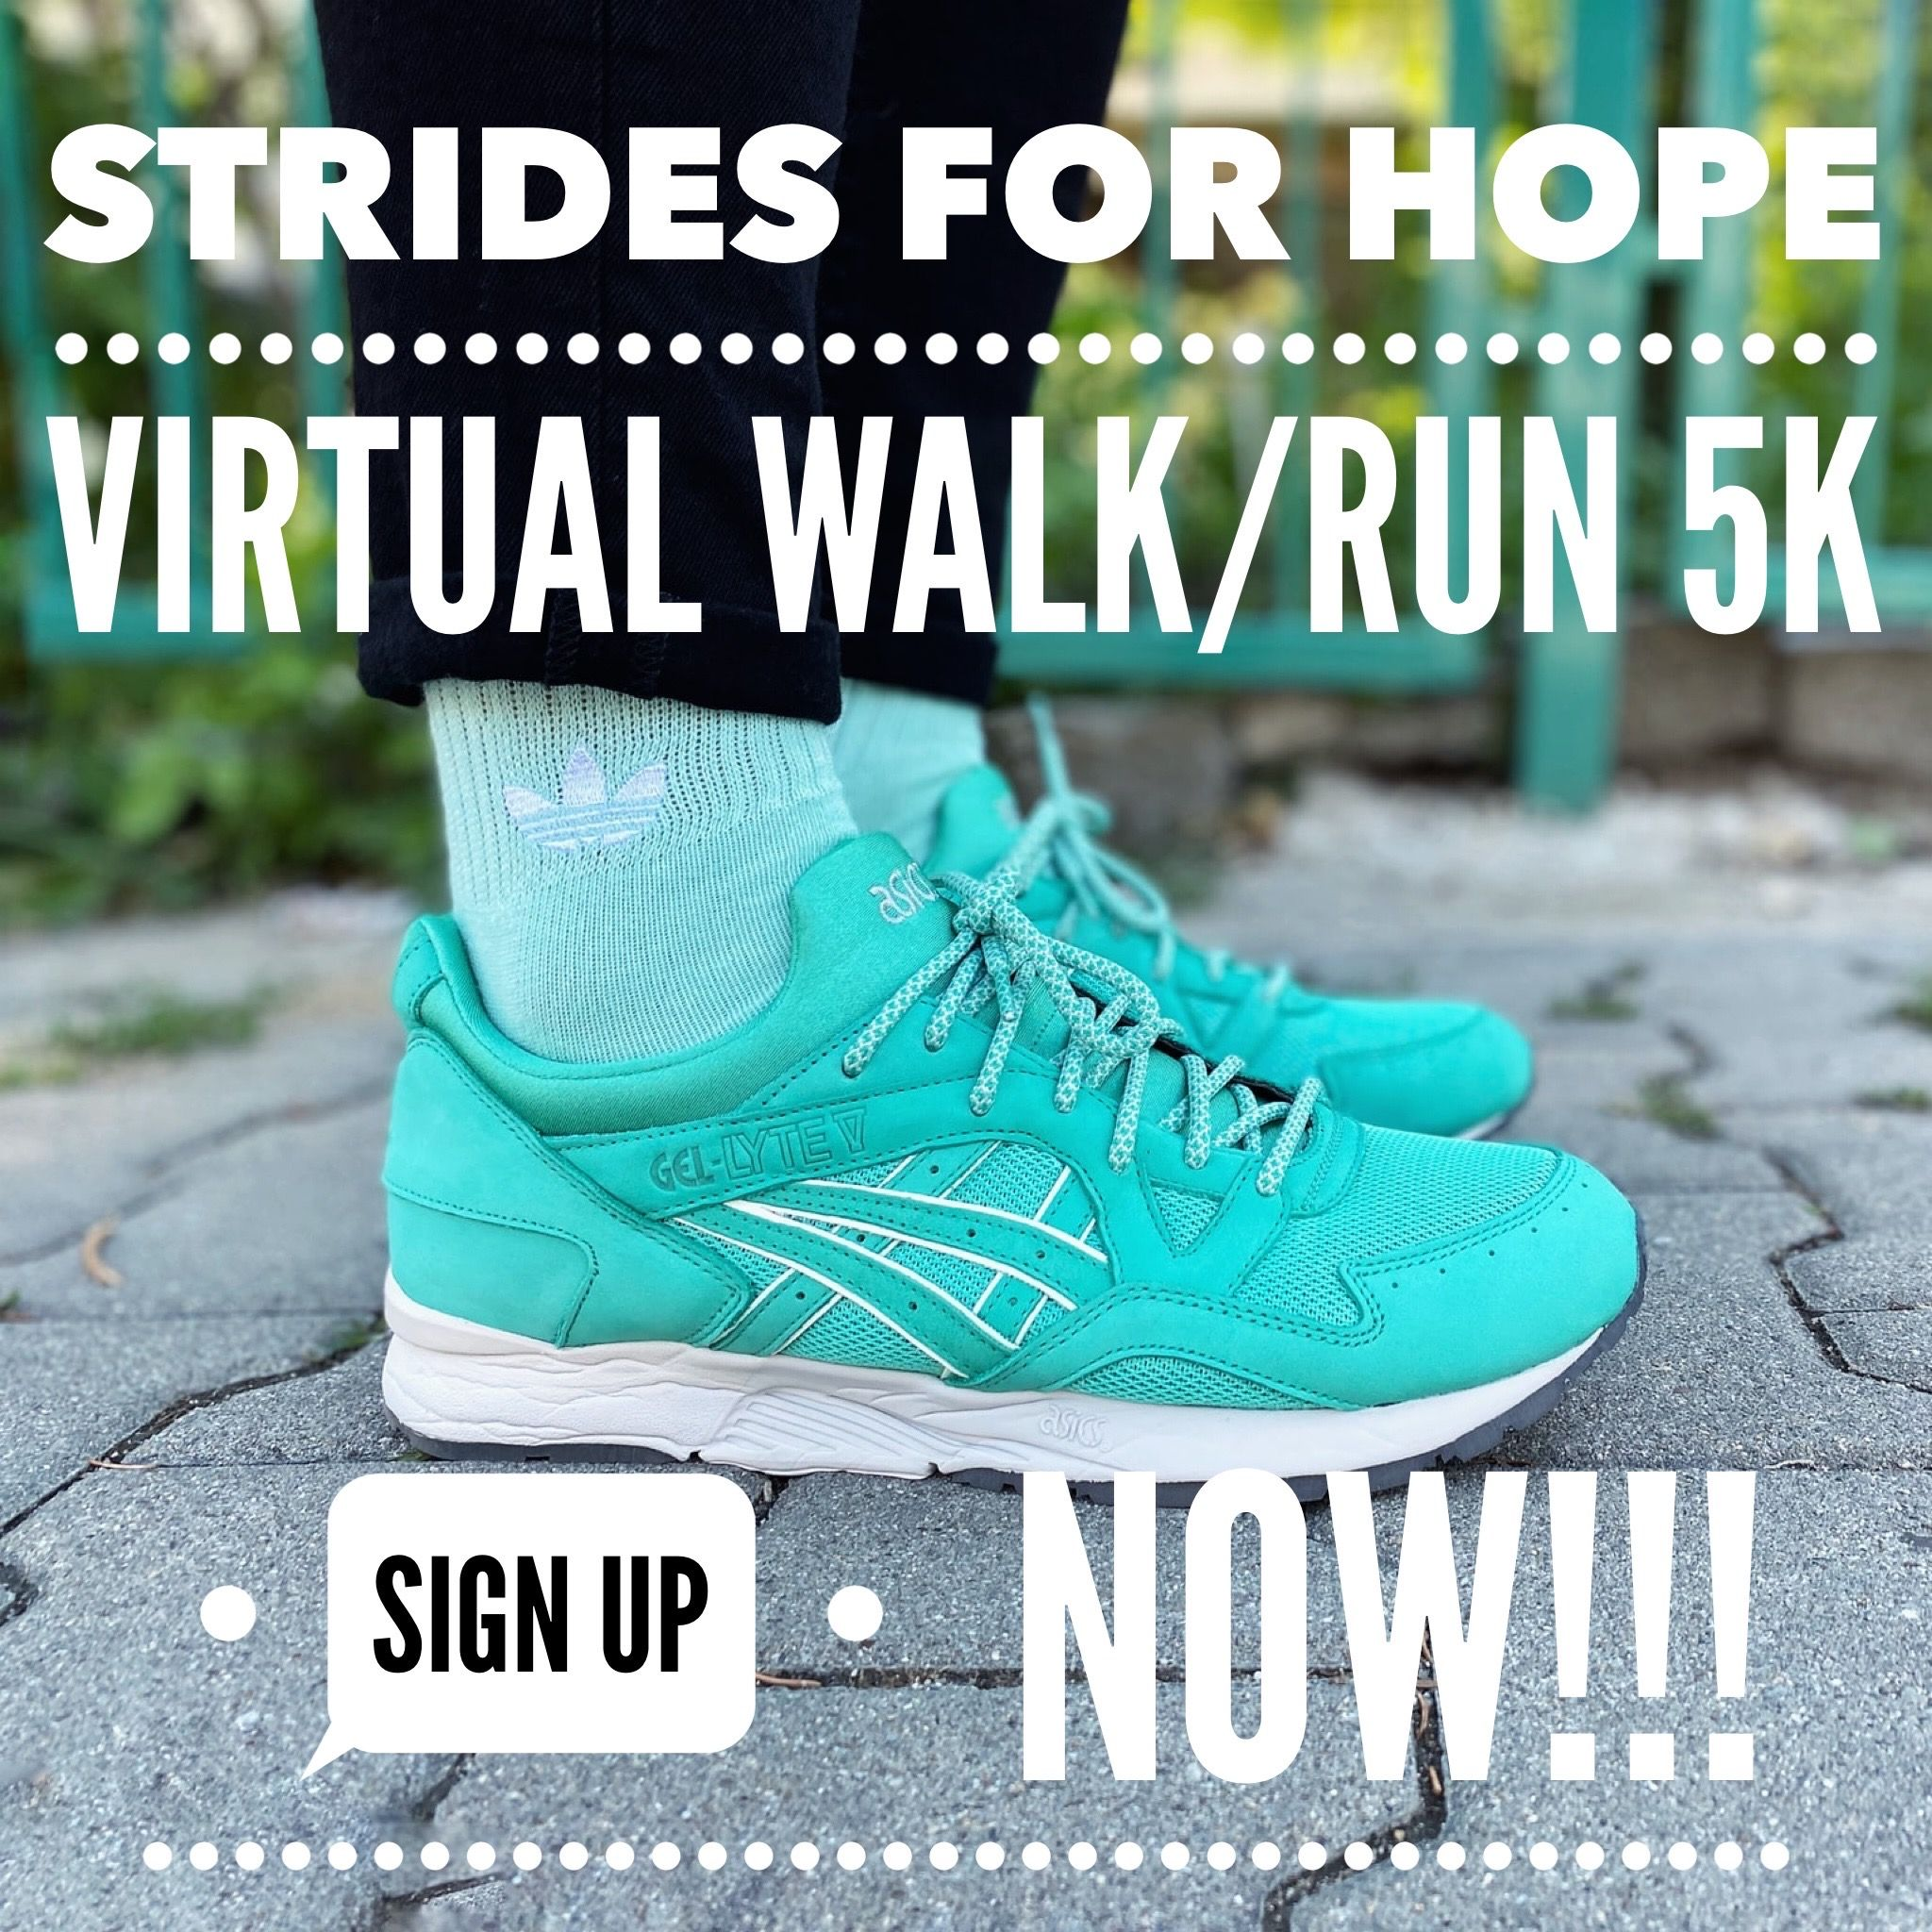 Strides for Hope Virtual 5K Walk / Run